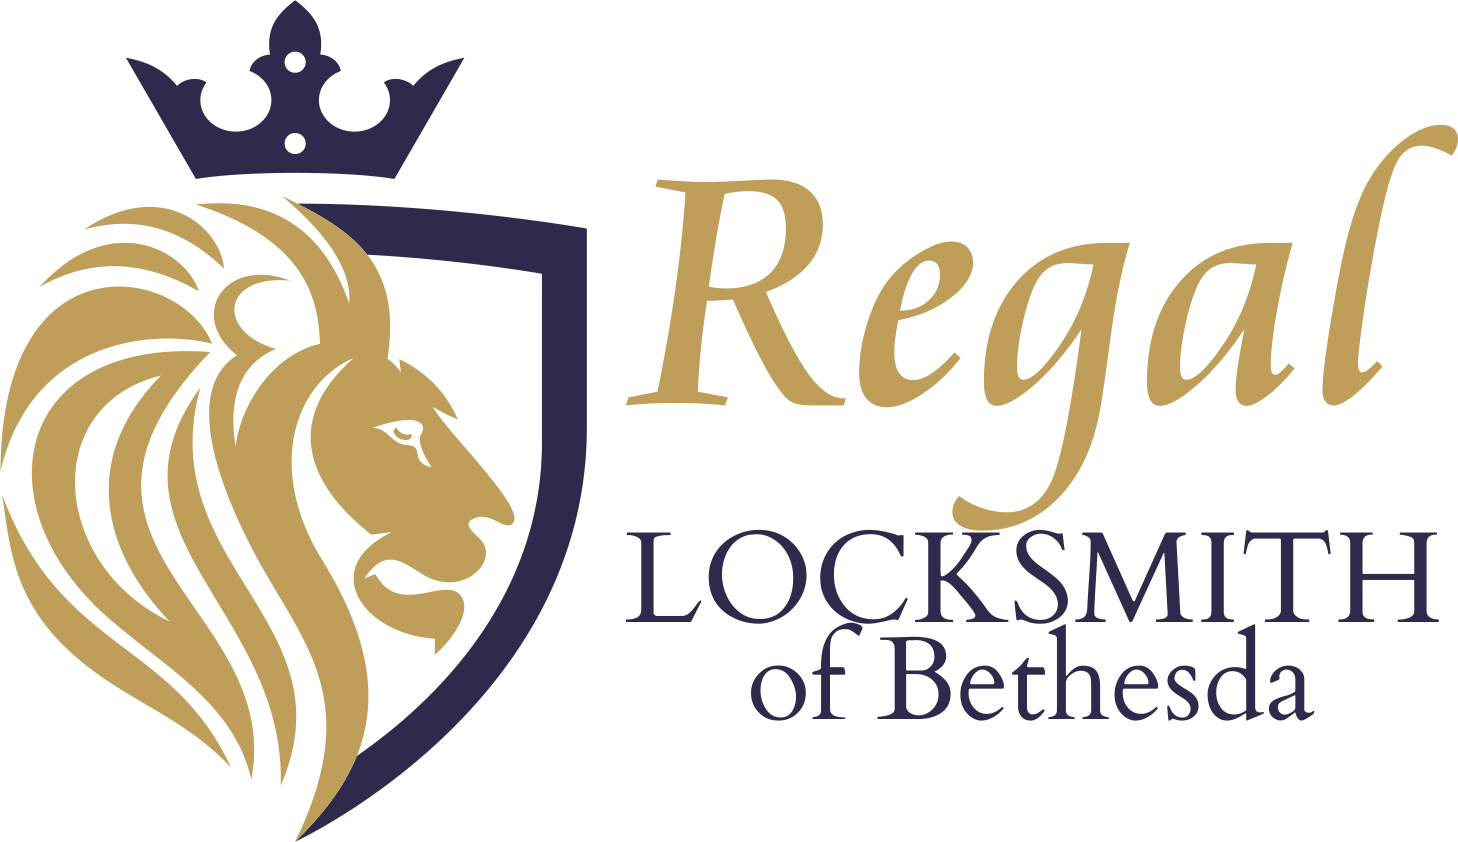 Regal Locksmith of Bethesda